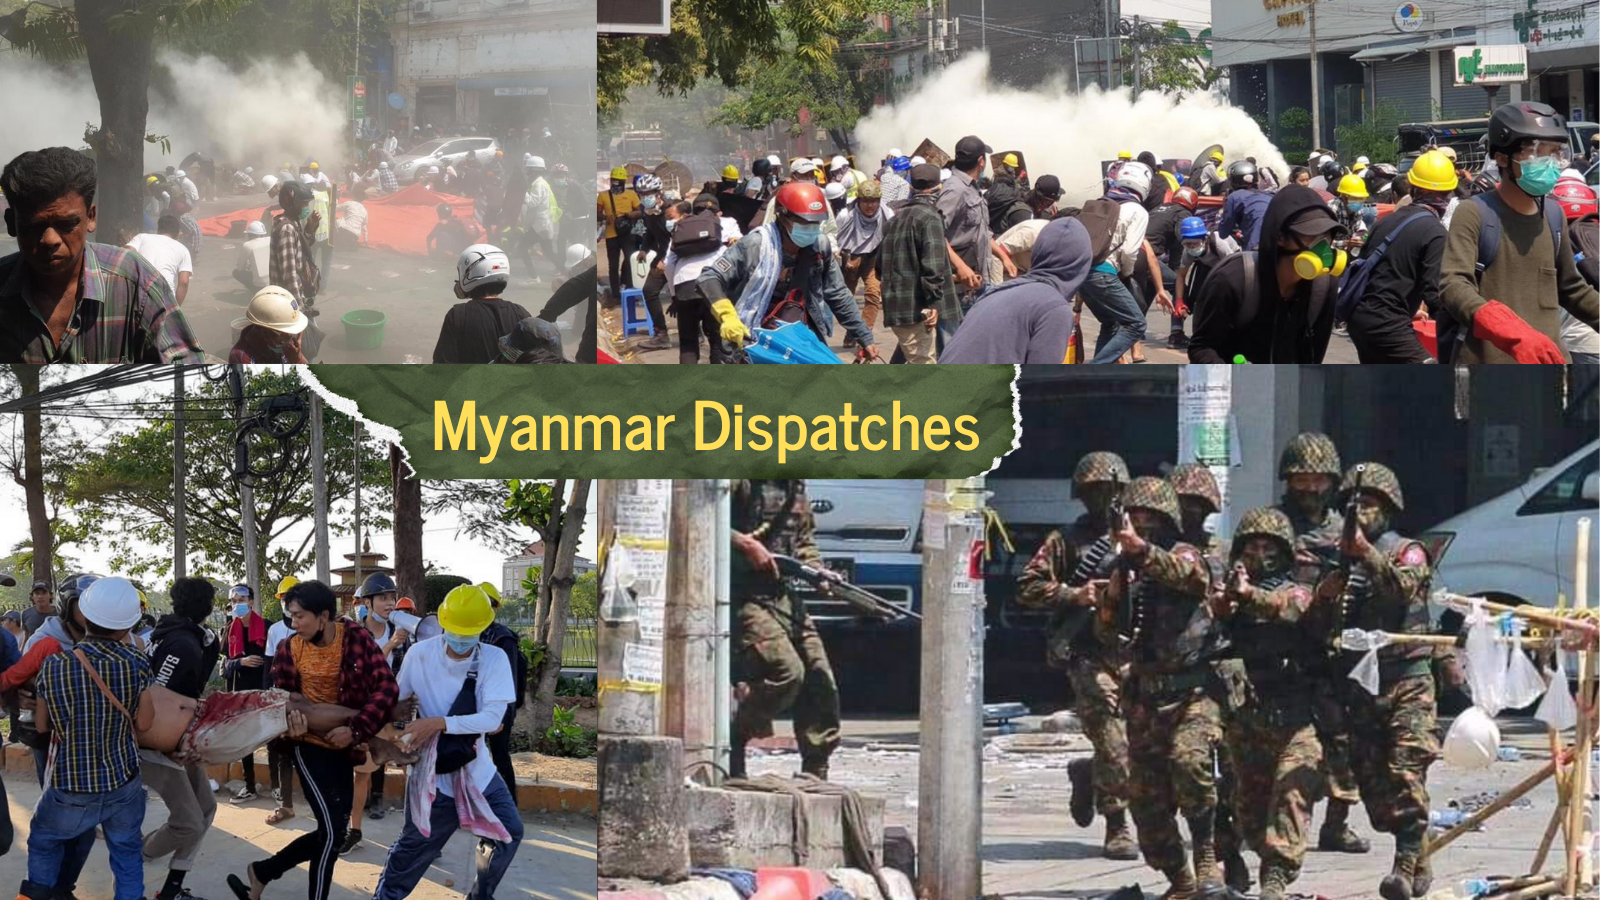 Myanmar dispatches: going to the bank during the coup is like 'catching a tiger in the Amazon rainforest'